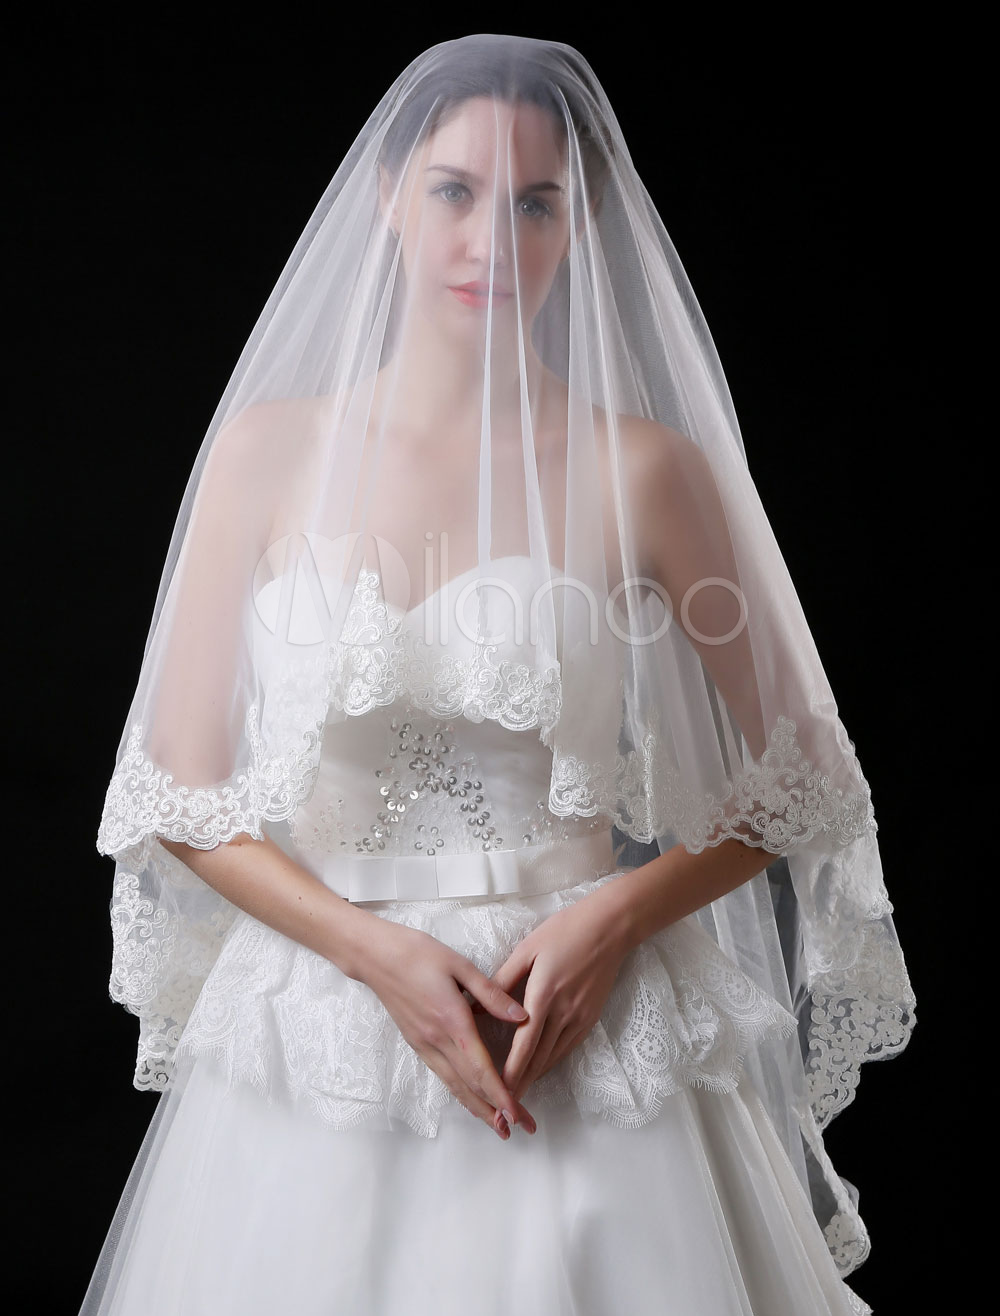 Buy Ivory Wedding Veil Tulle Oval Lace Applique One Tier Bridal Veil for $15.99 in Milanoo store